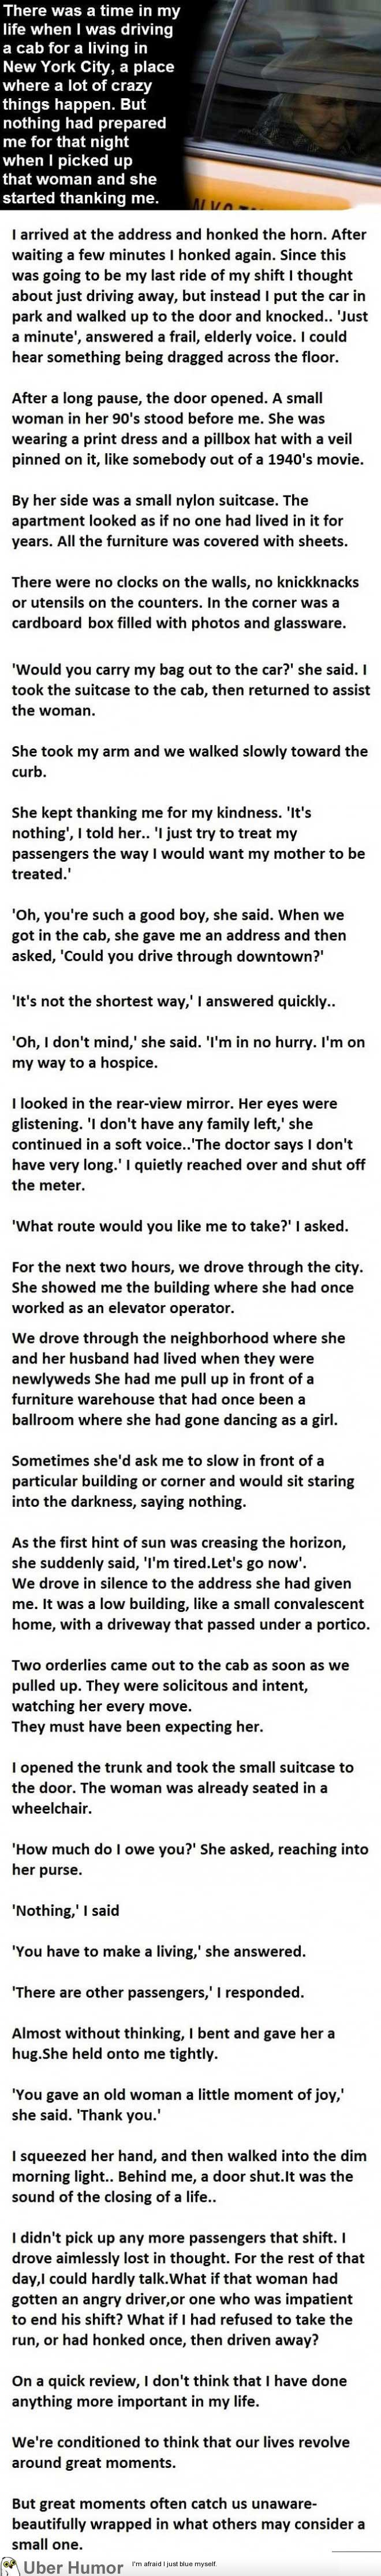 The Most Unexpected Cab Ride Ever. This Gave Me Goosebumps. | uberHumor.com